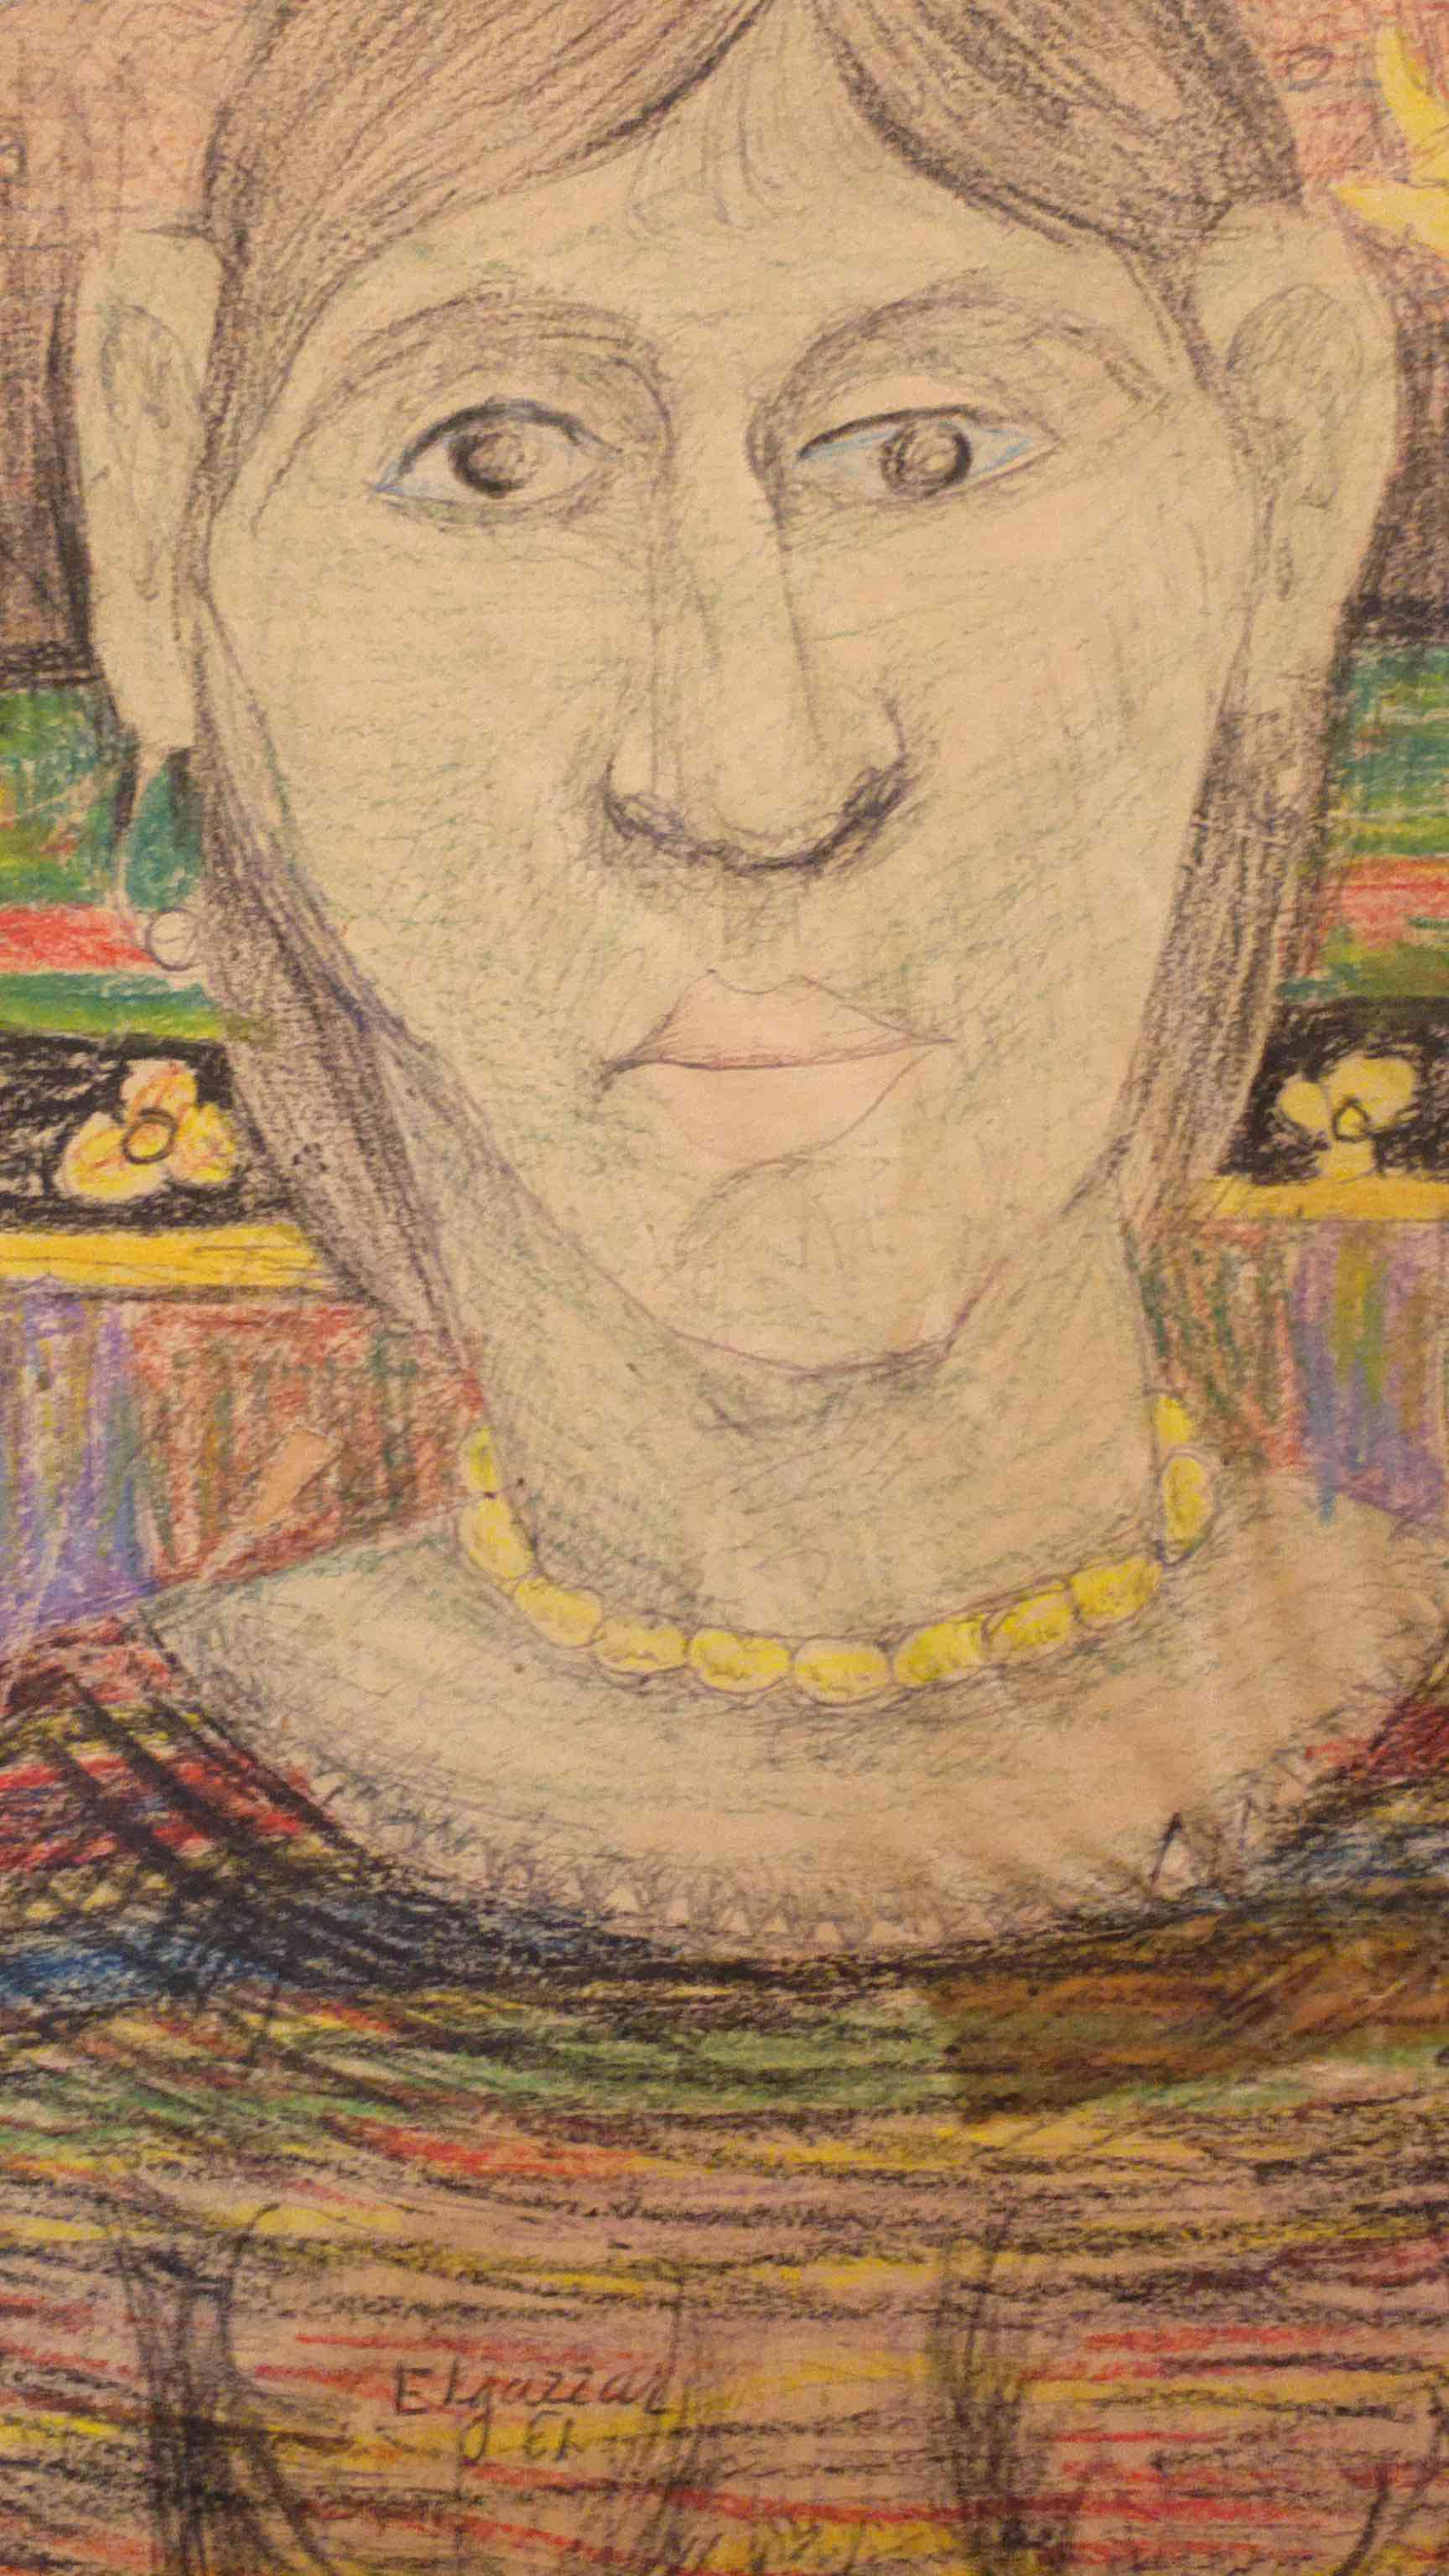 Face, work on paper, signed and authenticated